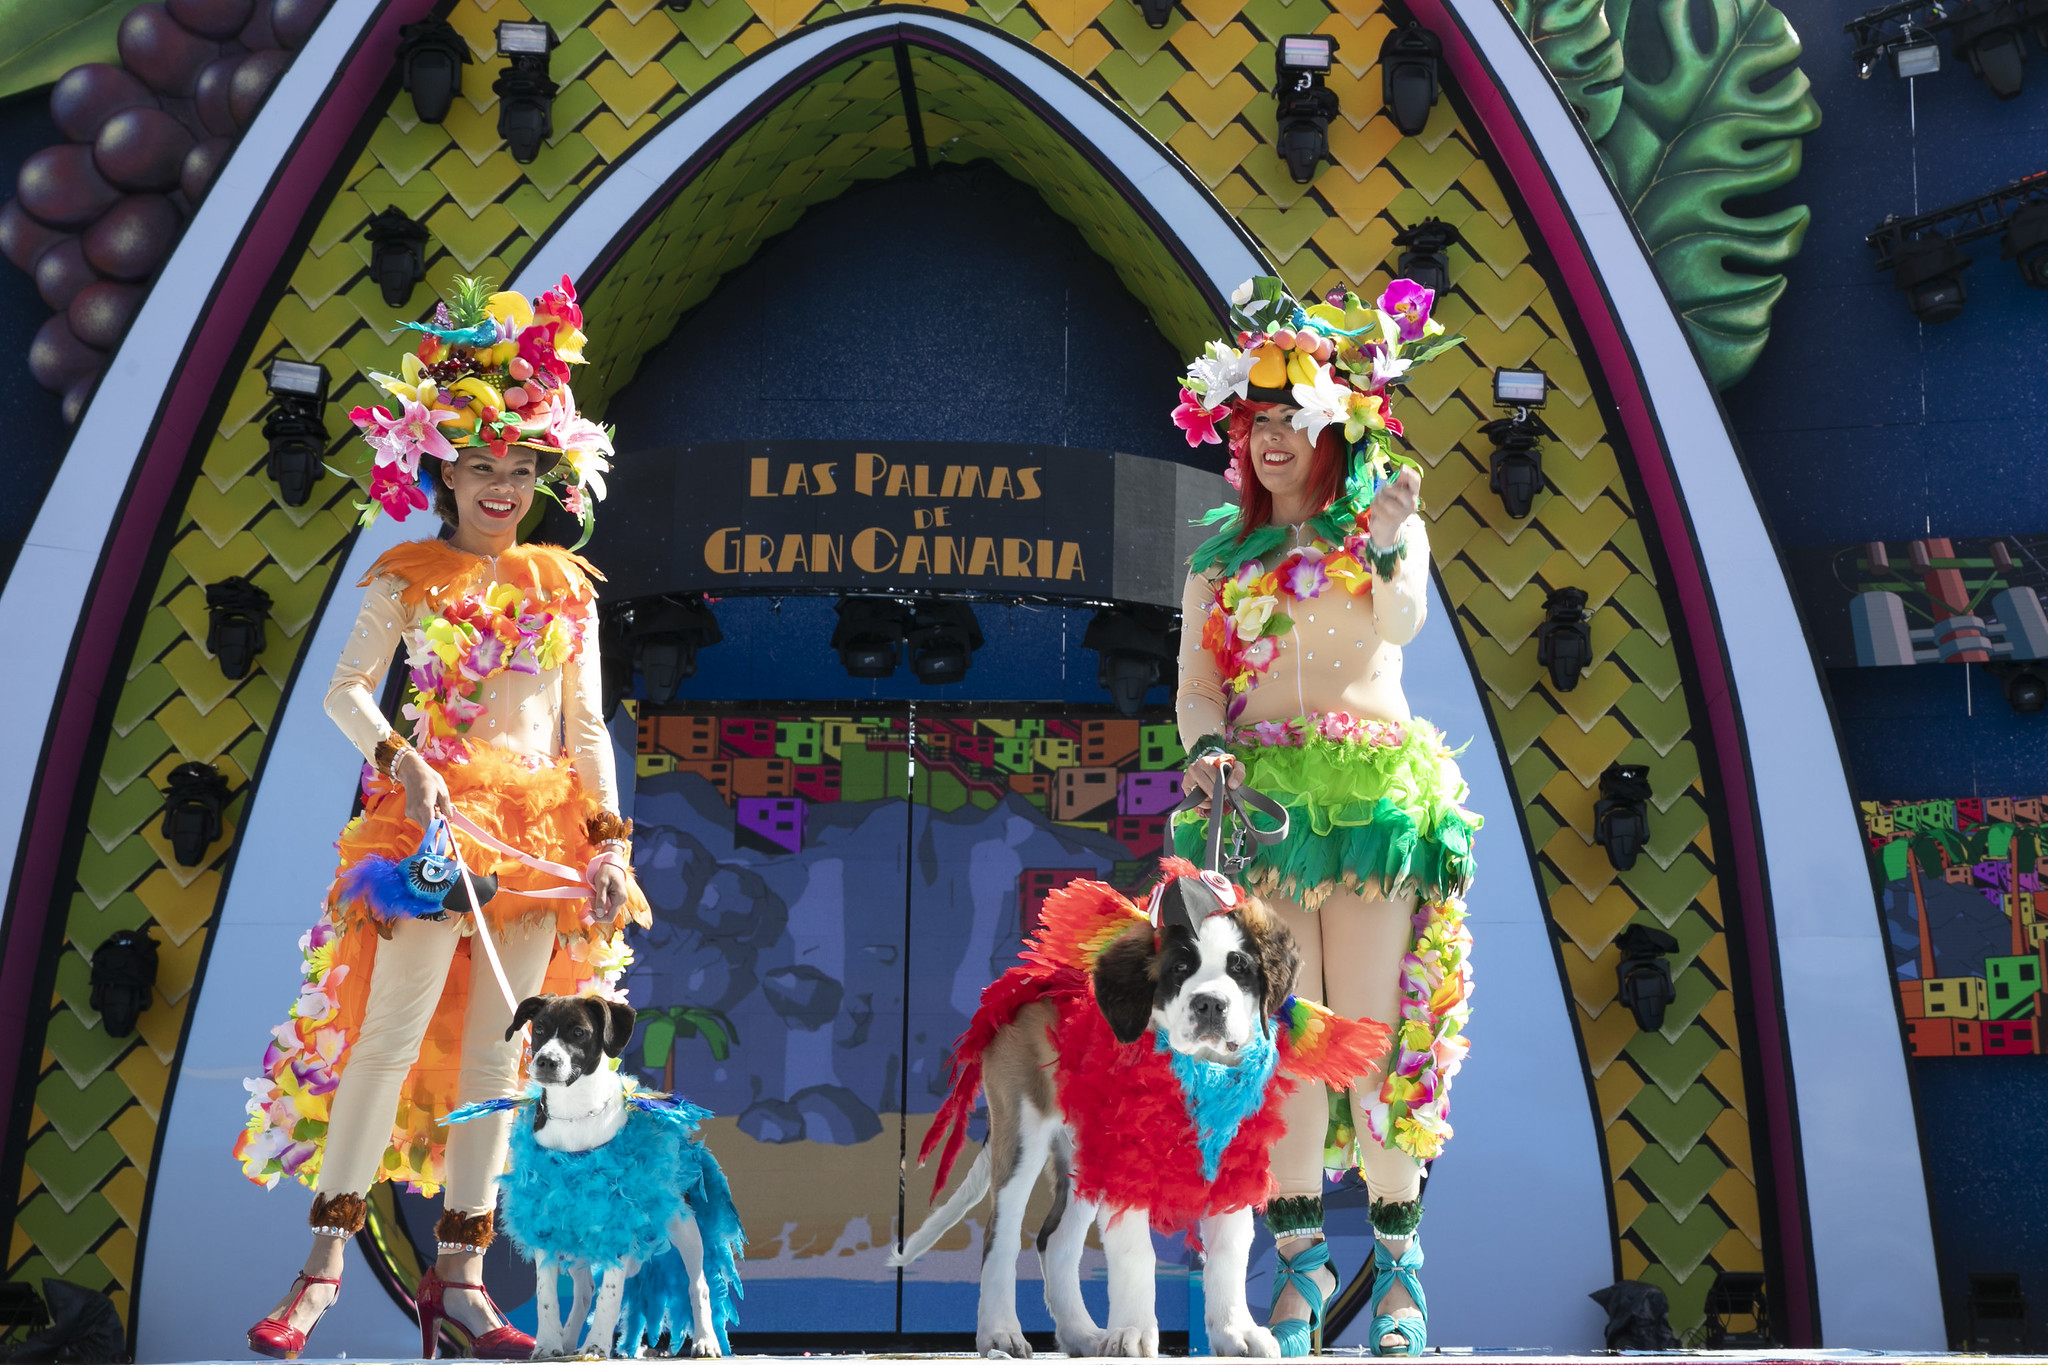 Dogs' parade in the Carnival of Las Palmas de Gran Canaria